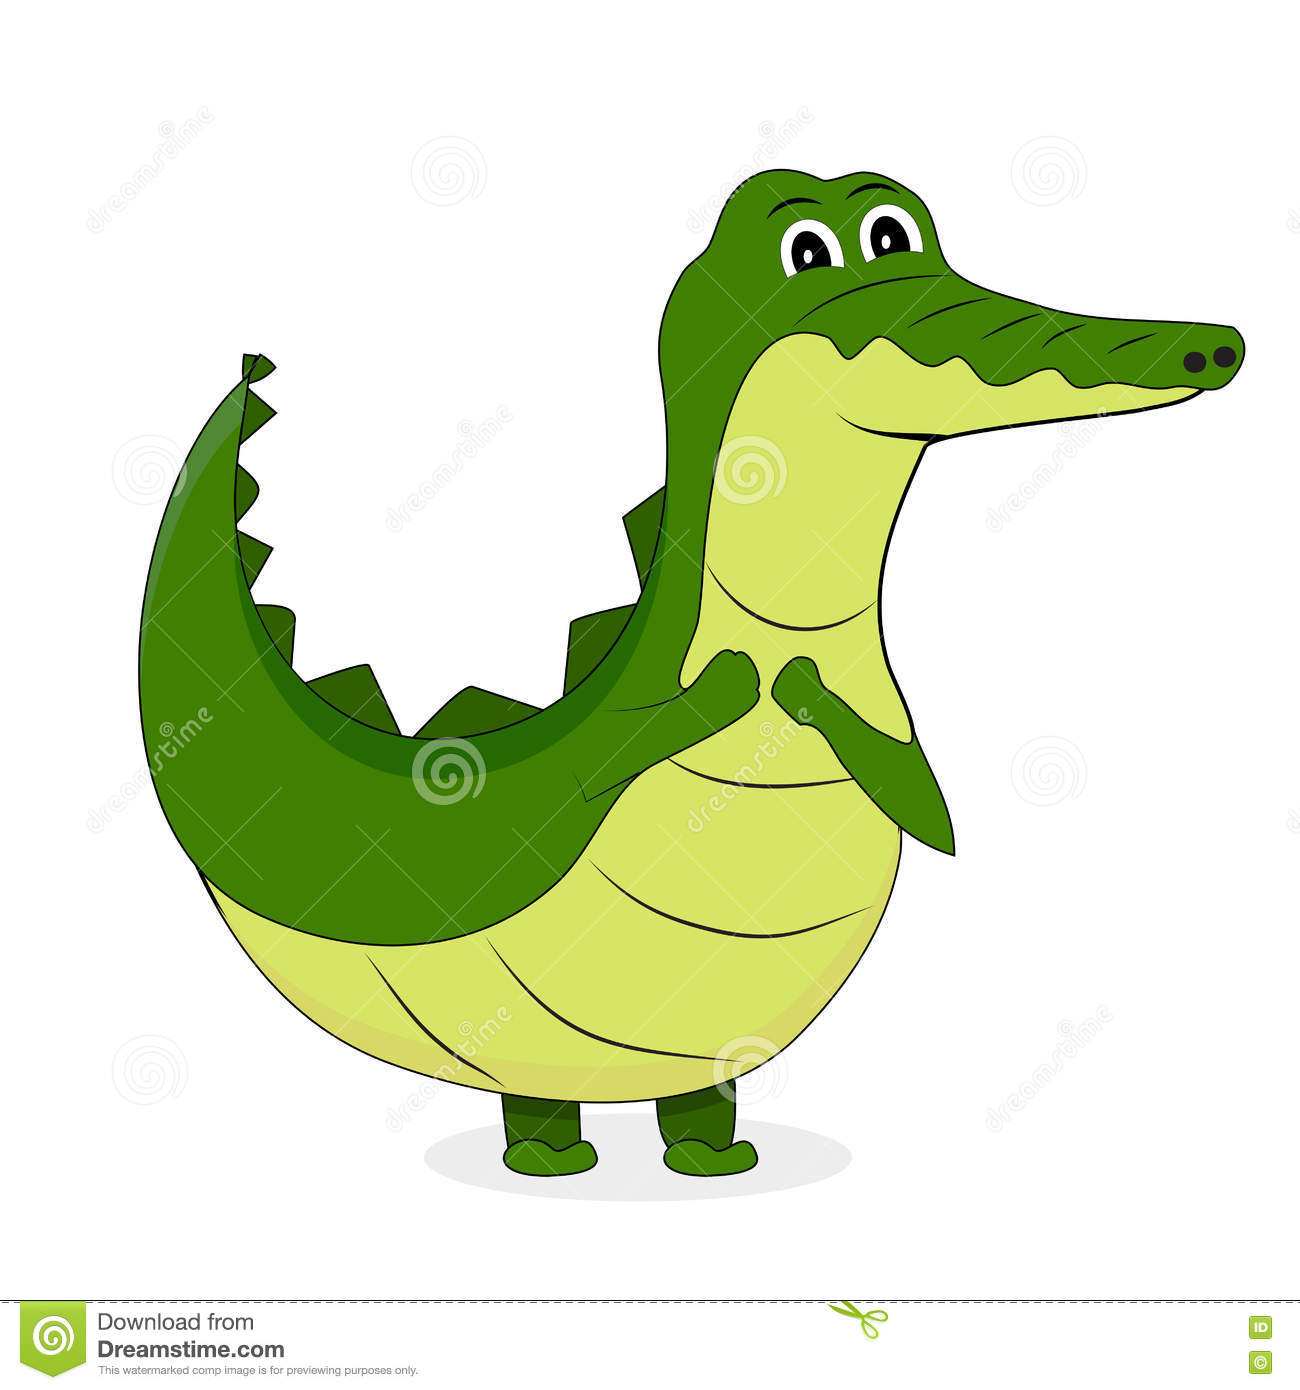 Cute crocodile character stock vector. Illustration of ...